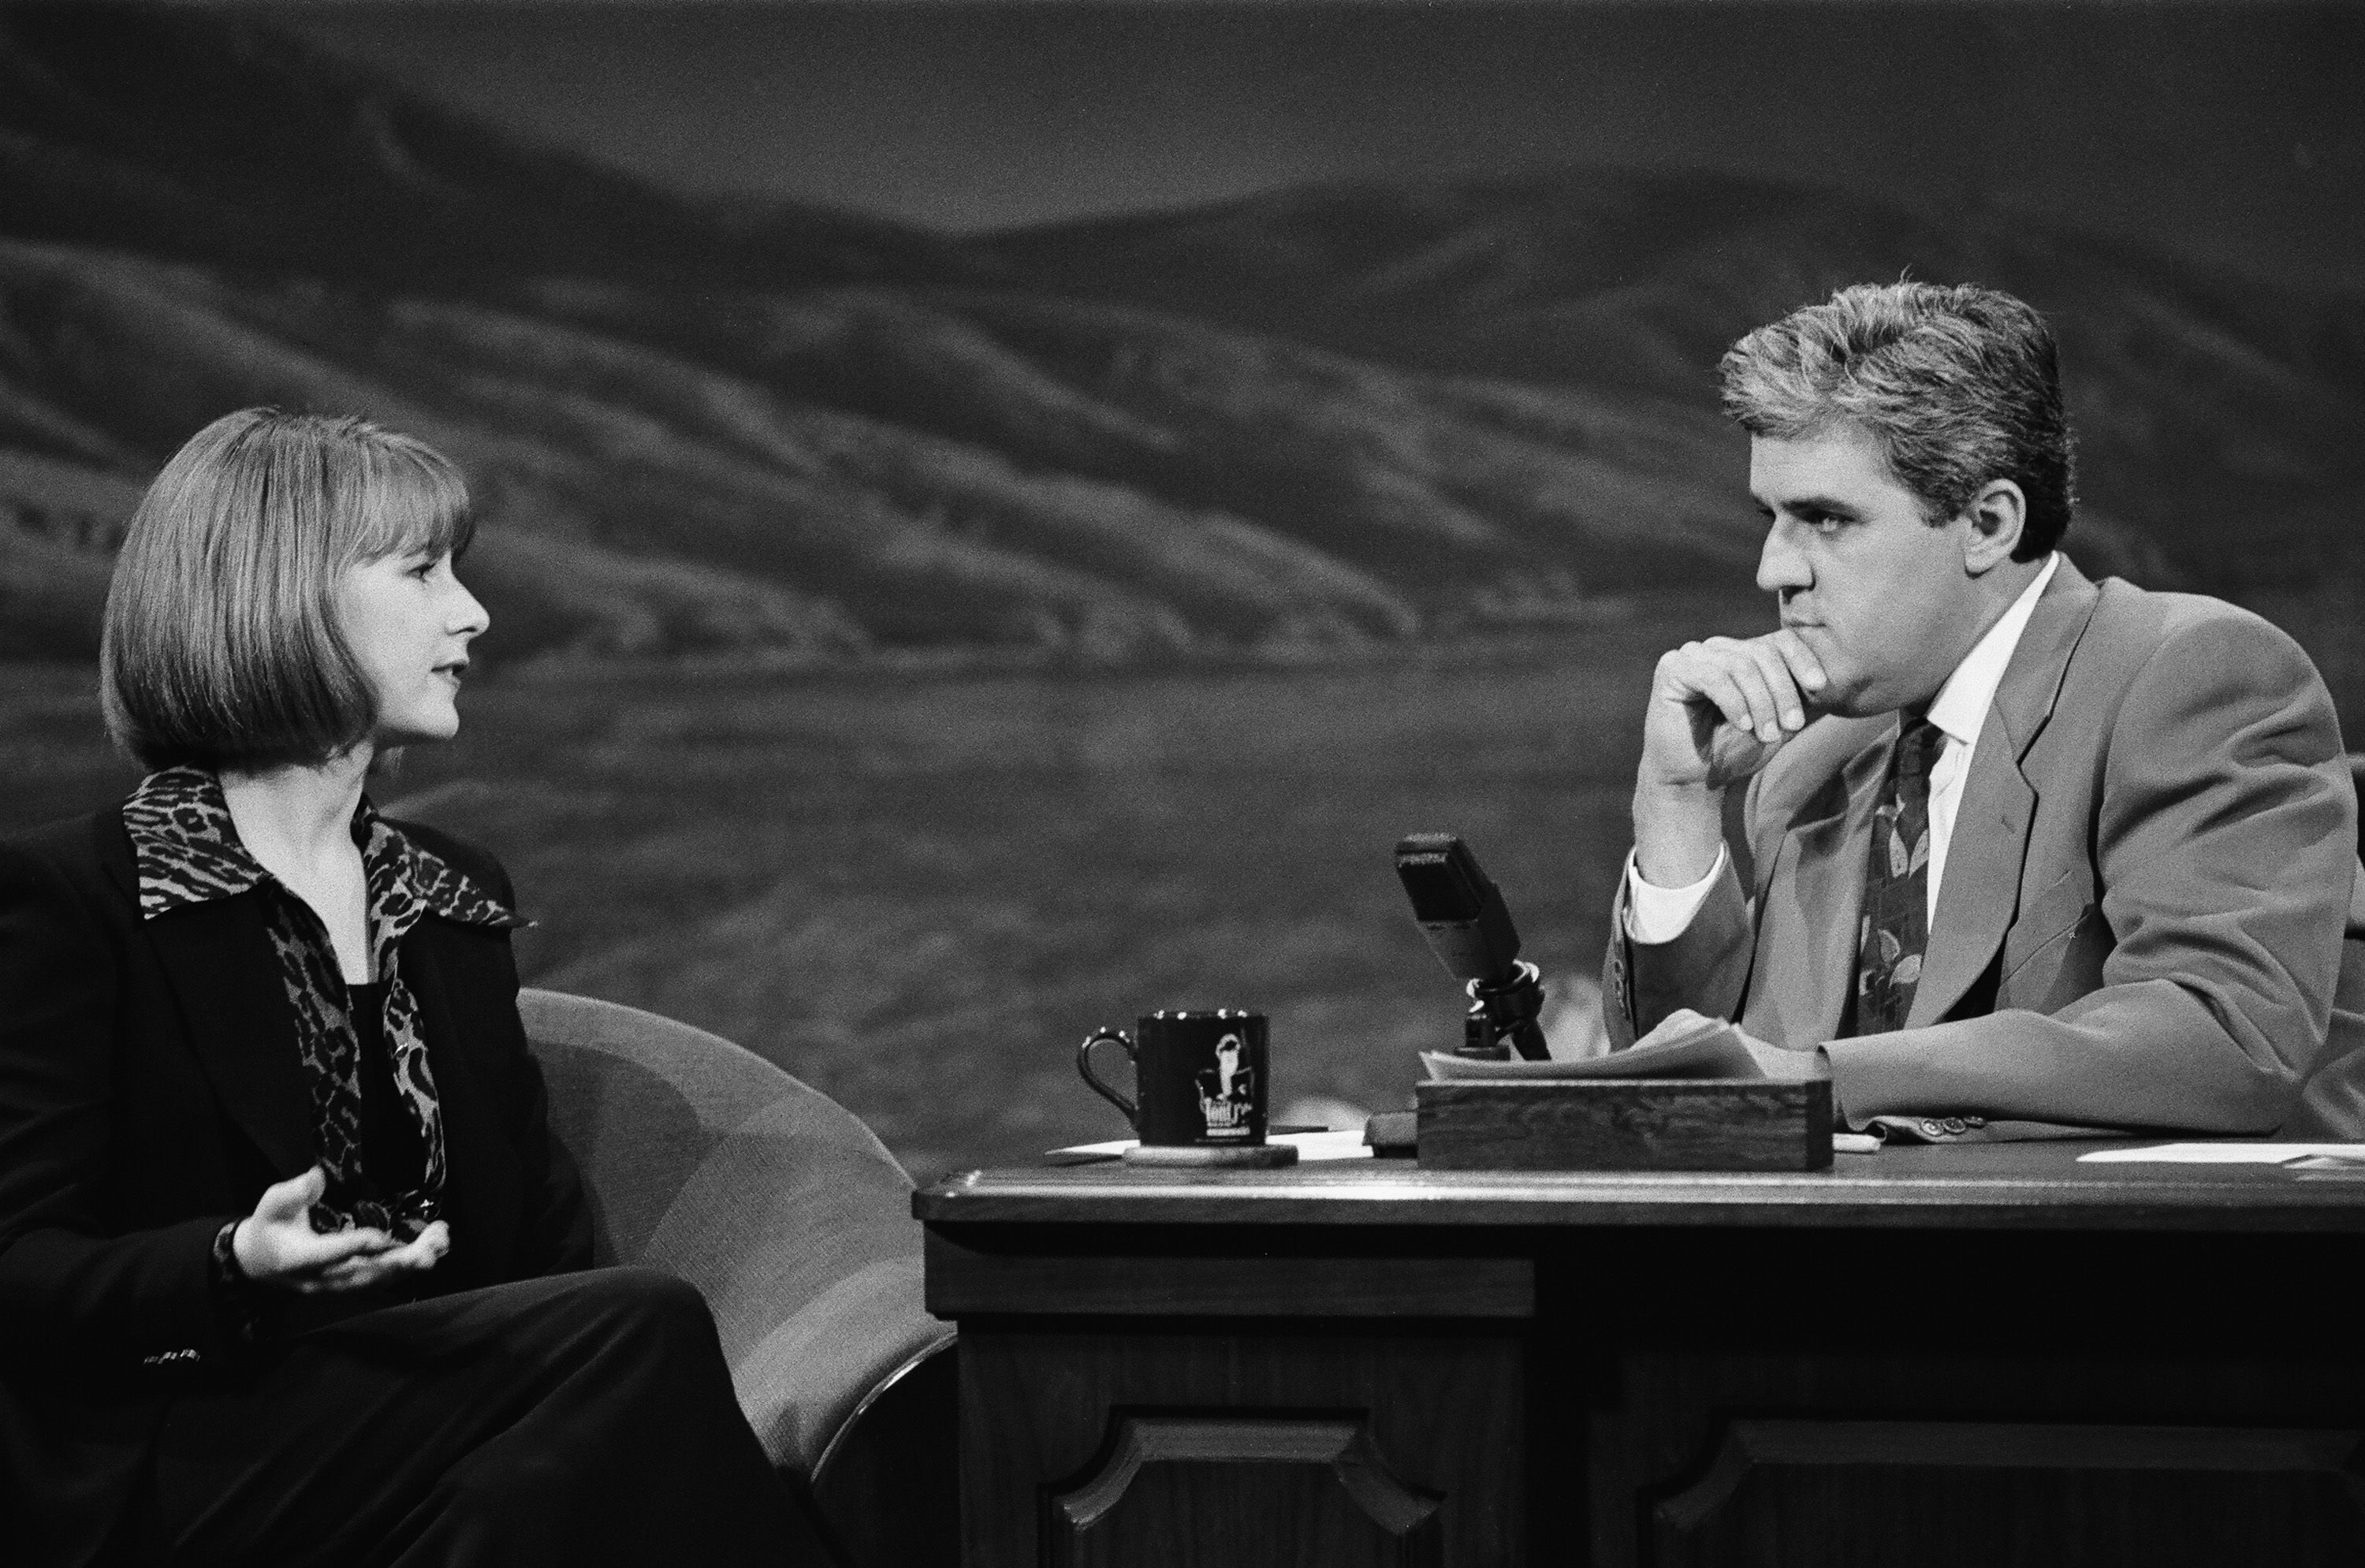 Tabitha Soren on The Tonight Show with Jay Leno in 1992.